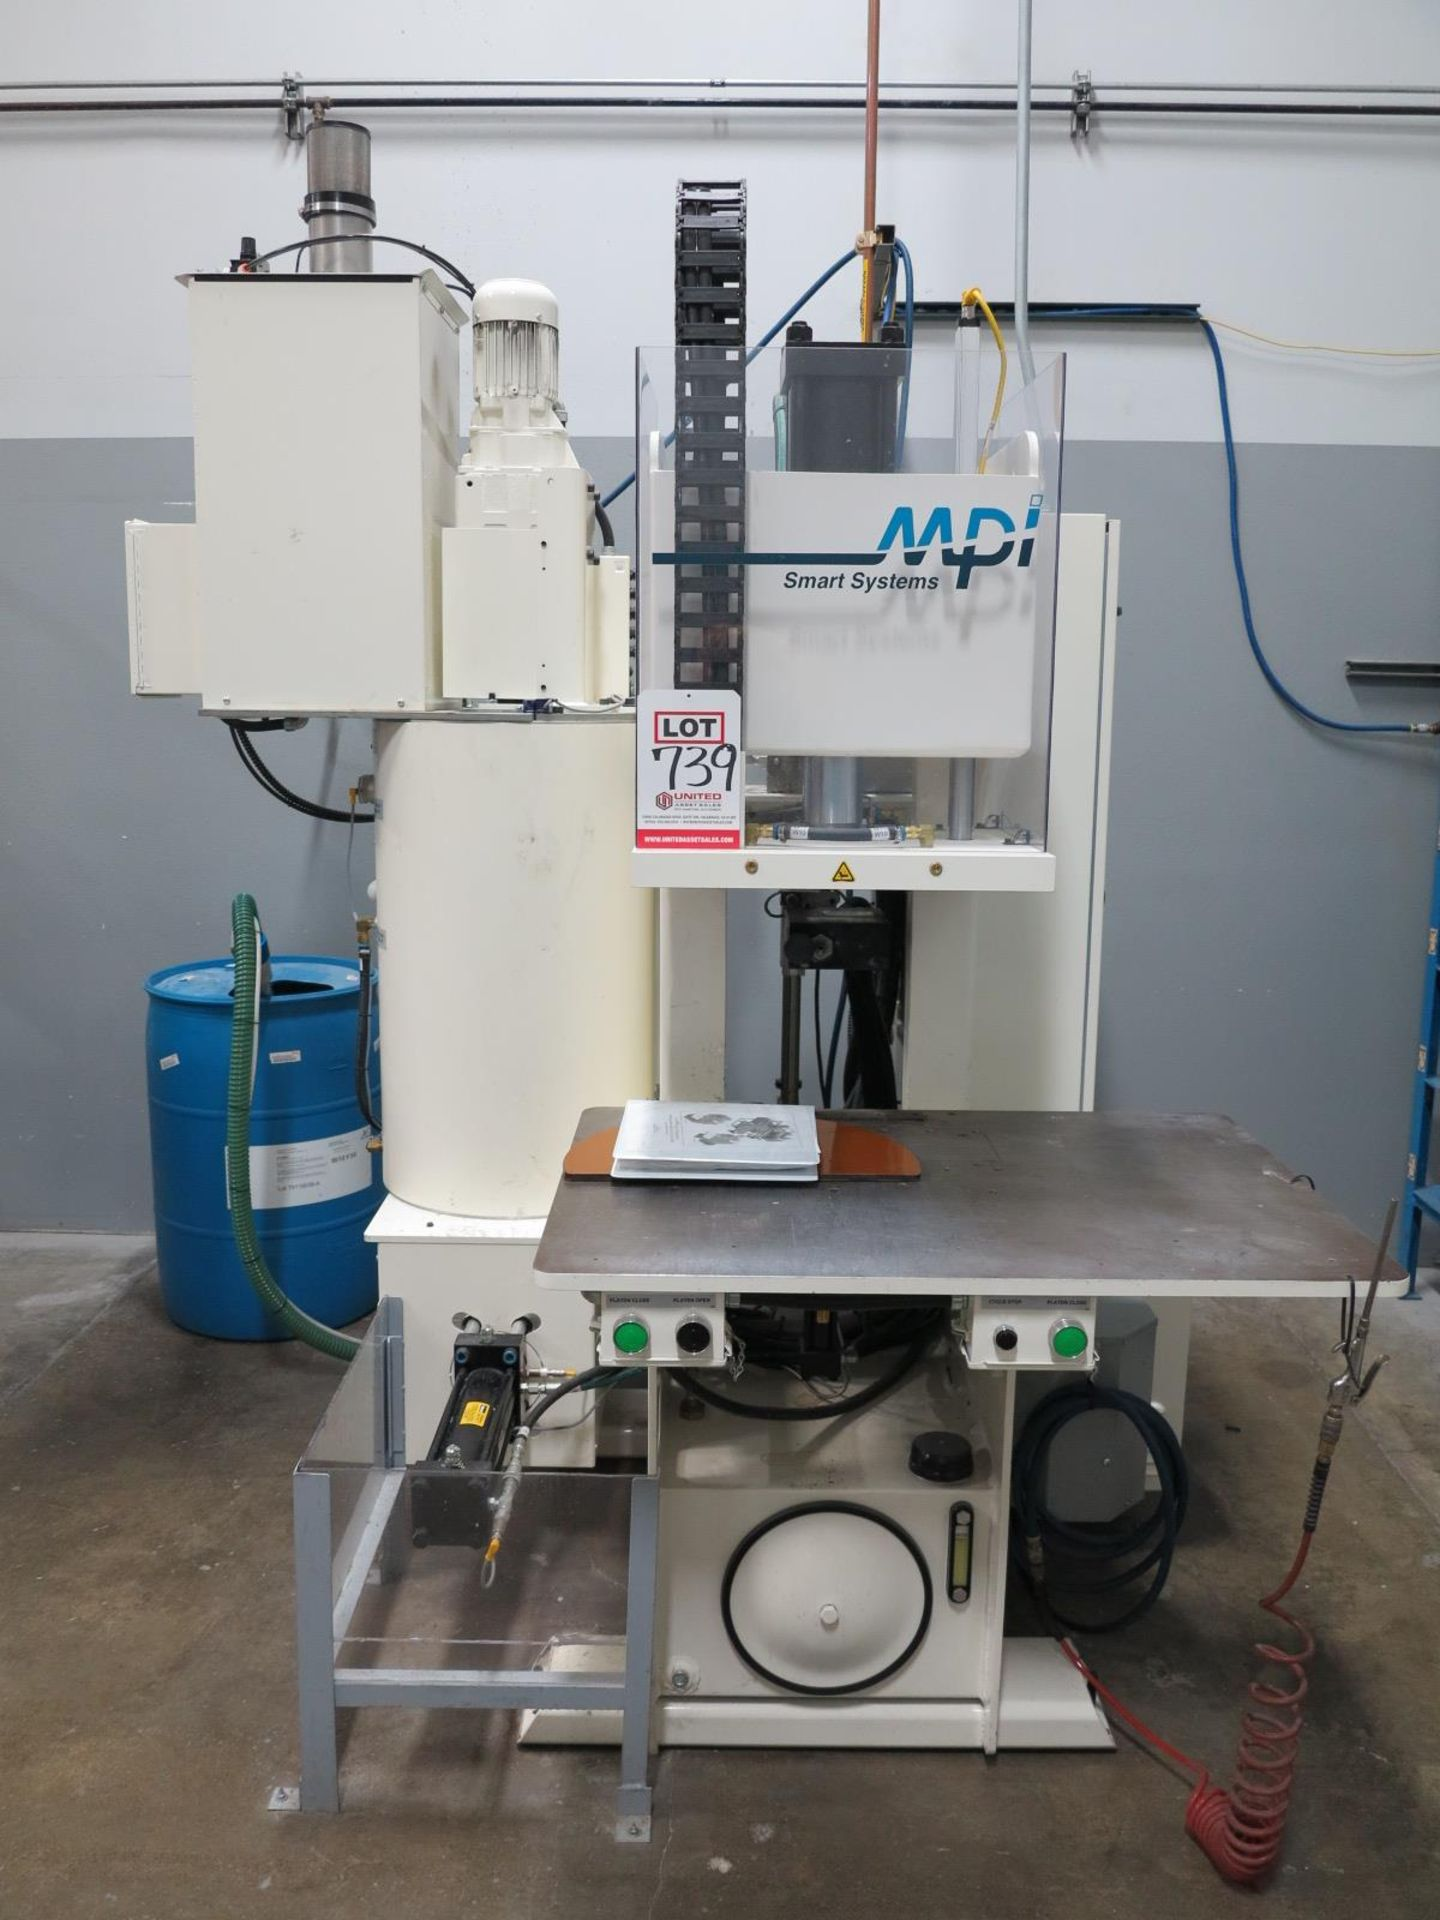 """Lot 739 - 2018 MPI SYSTEMS SM 55-25-18 C FRAME WAX INJECTOR, 25 TON, MPR SMART CONTROLS II, 12"""" COLOR OPERATOR"""